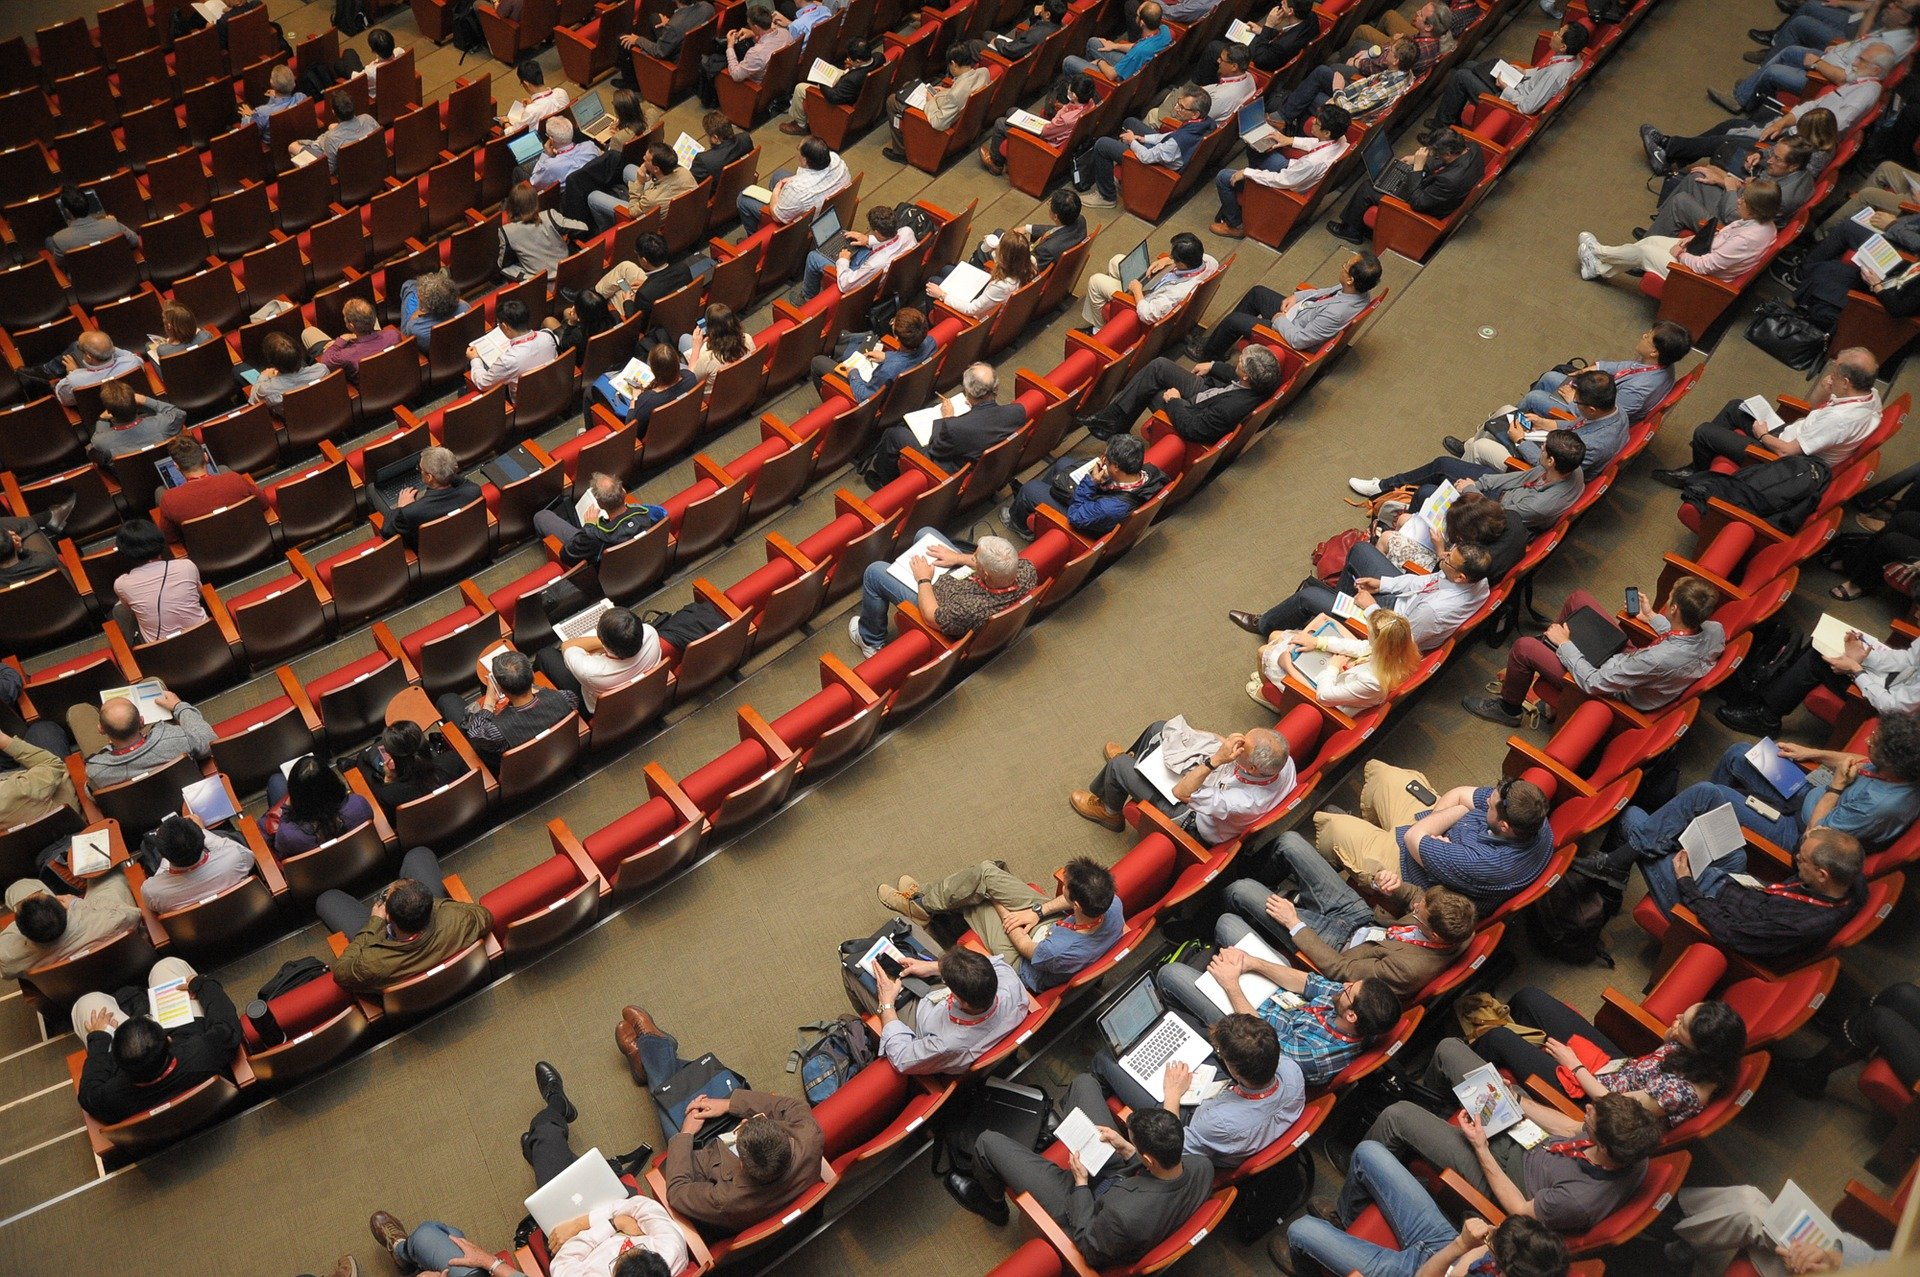 Several people sitting in an auditorium while attending a conference   Photo:Pixabay/정훈 김